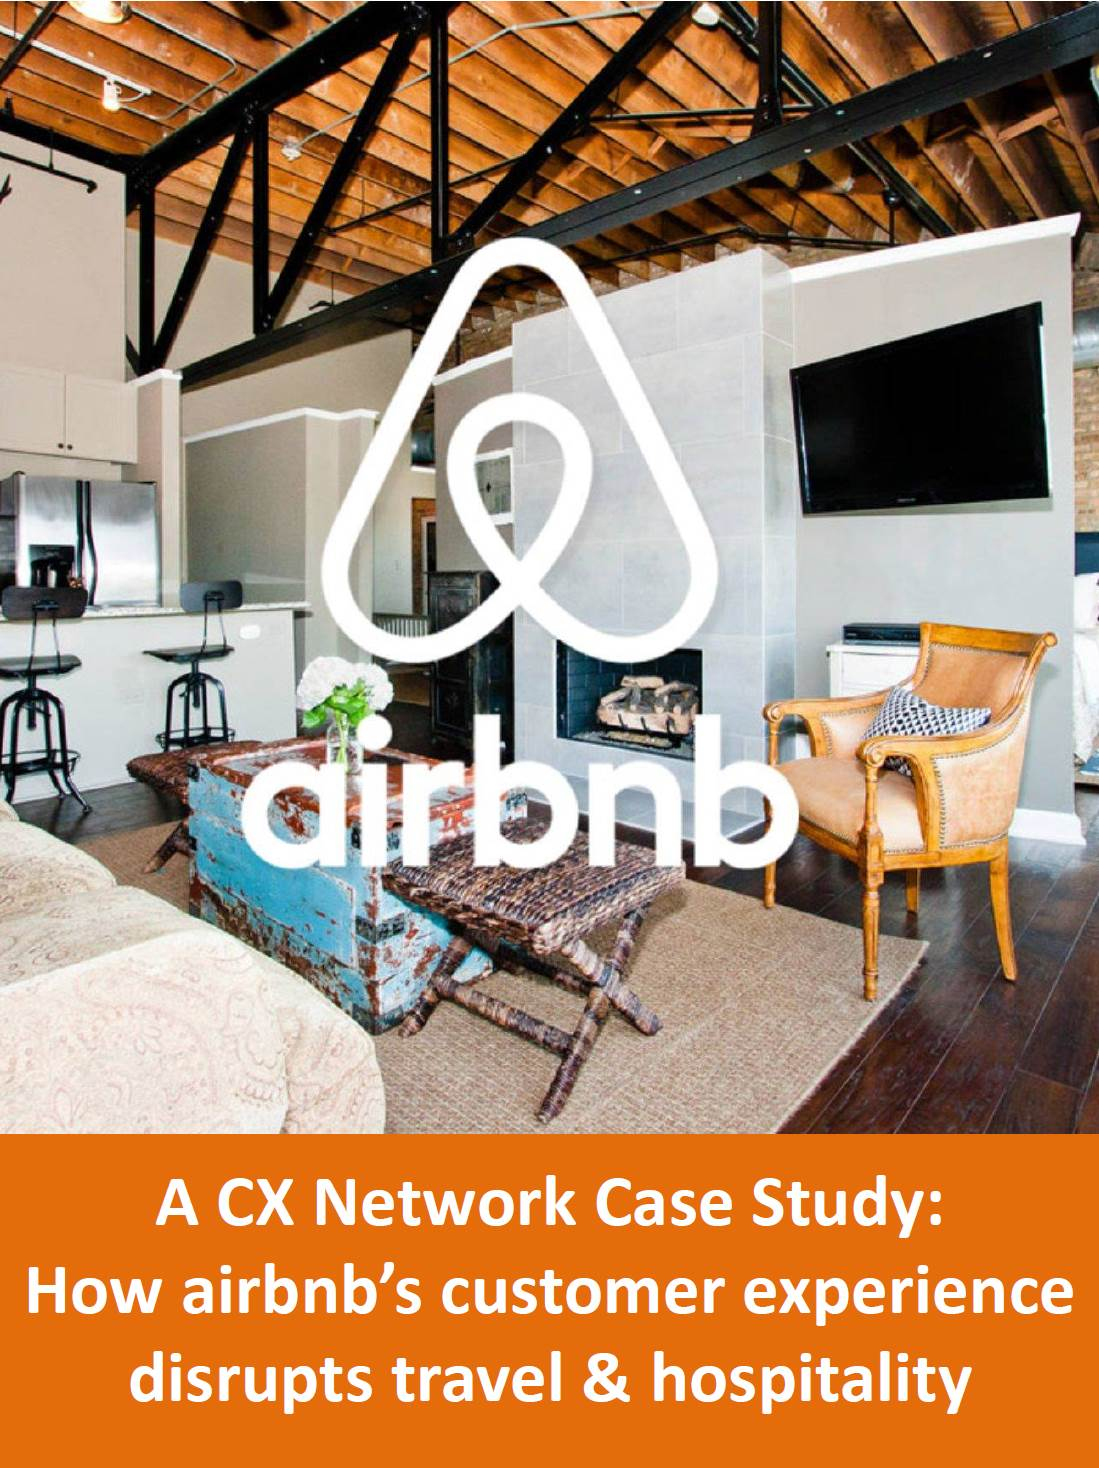 Case Study: How Airbnb's Customer Experience Disrupts Travel & Hospitality